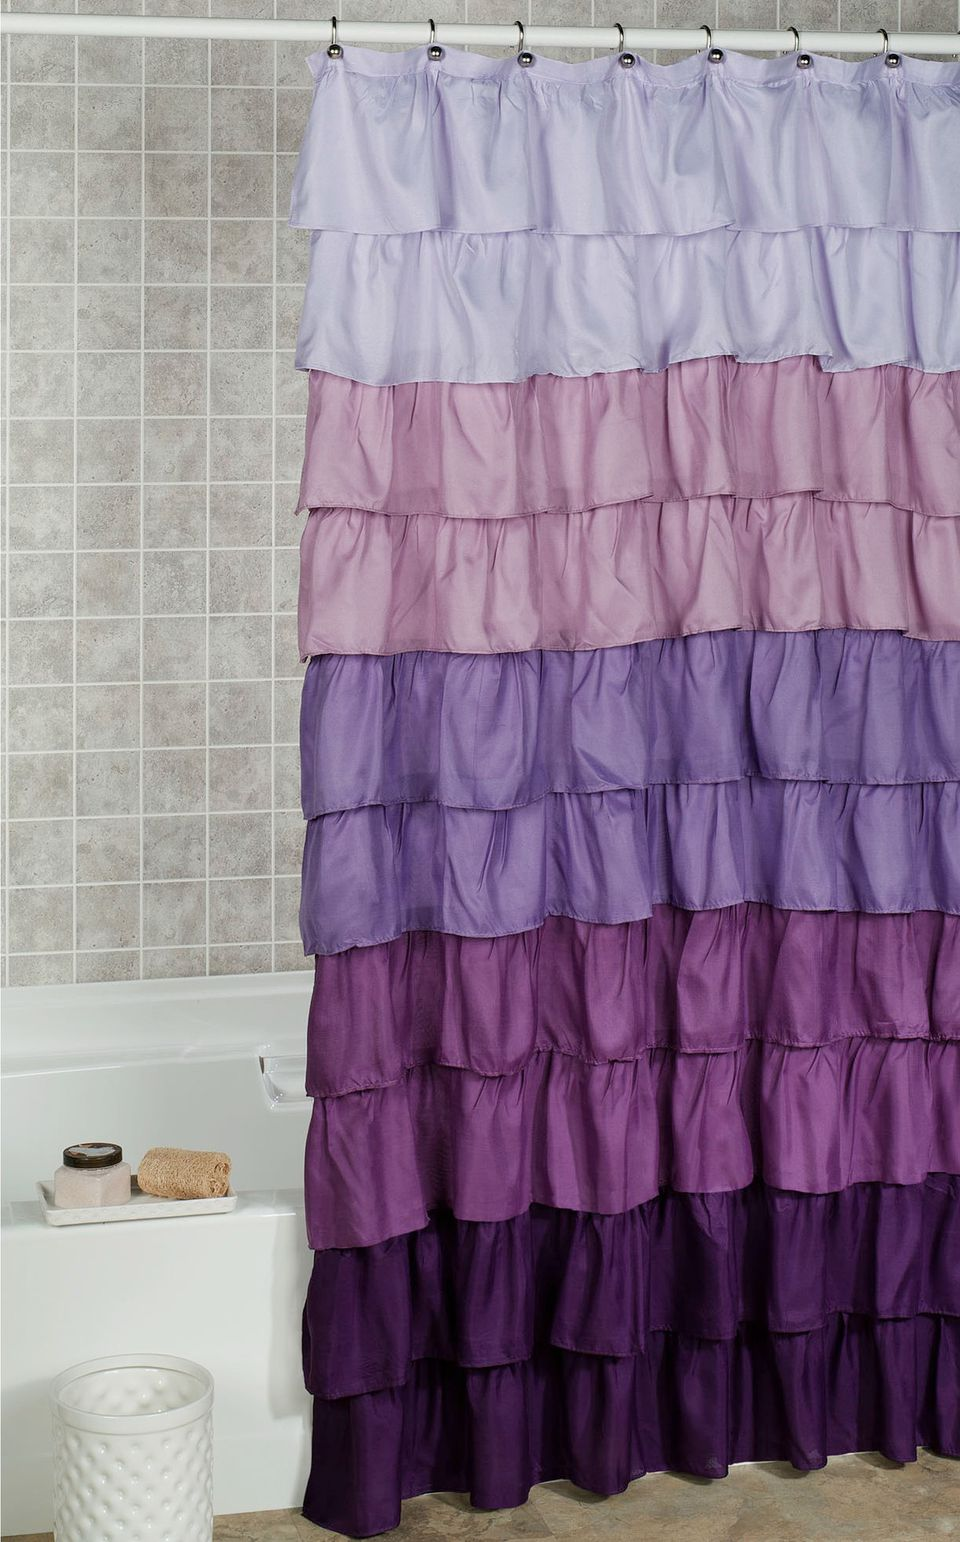 purple_ombre_ruffled_shower_curtain.jpg